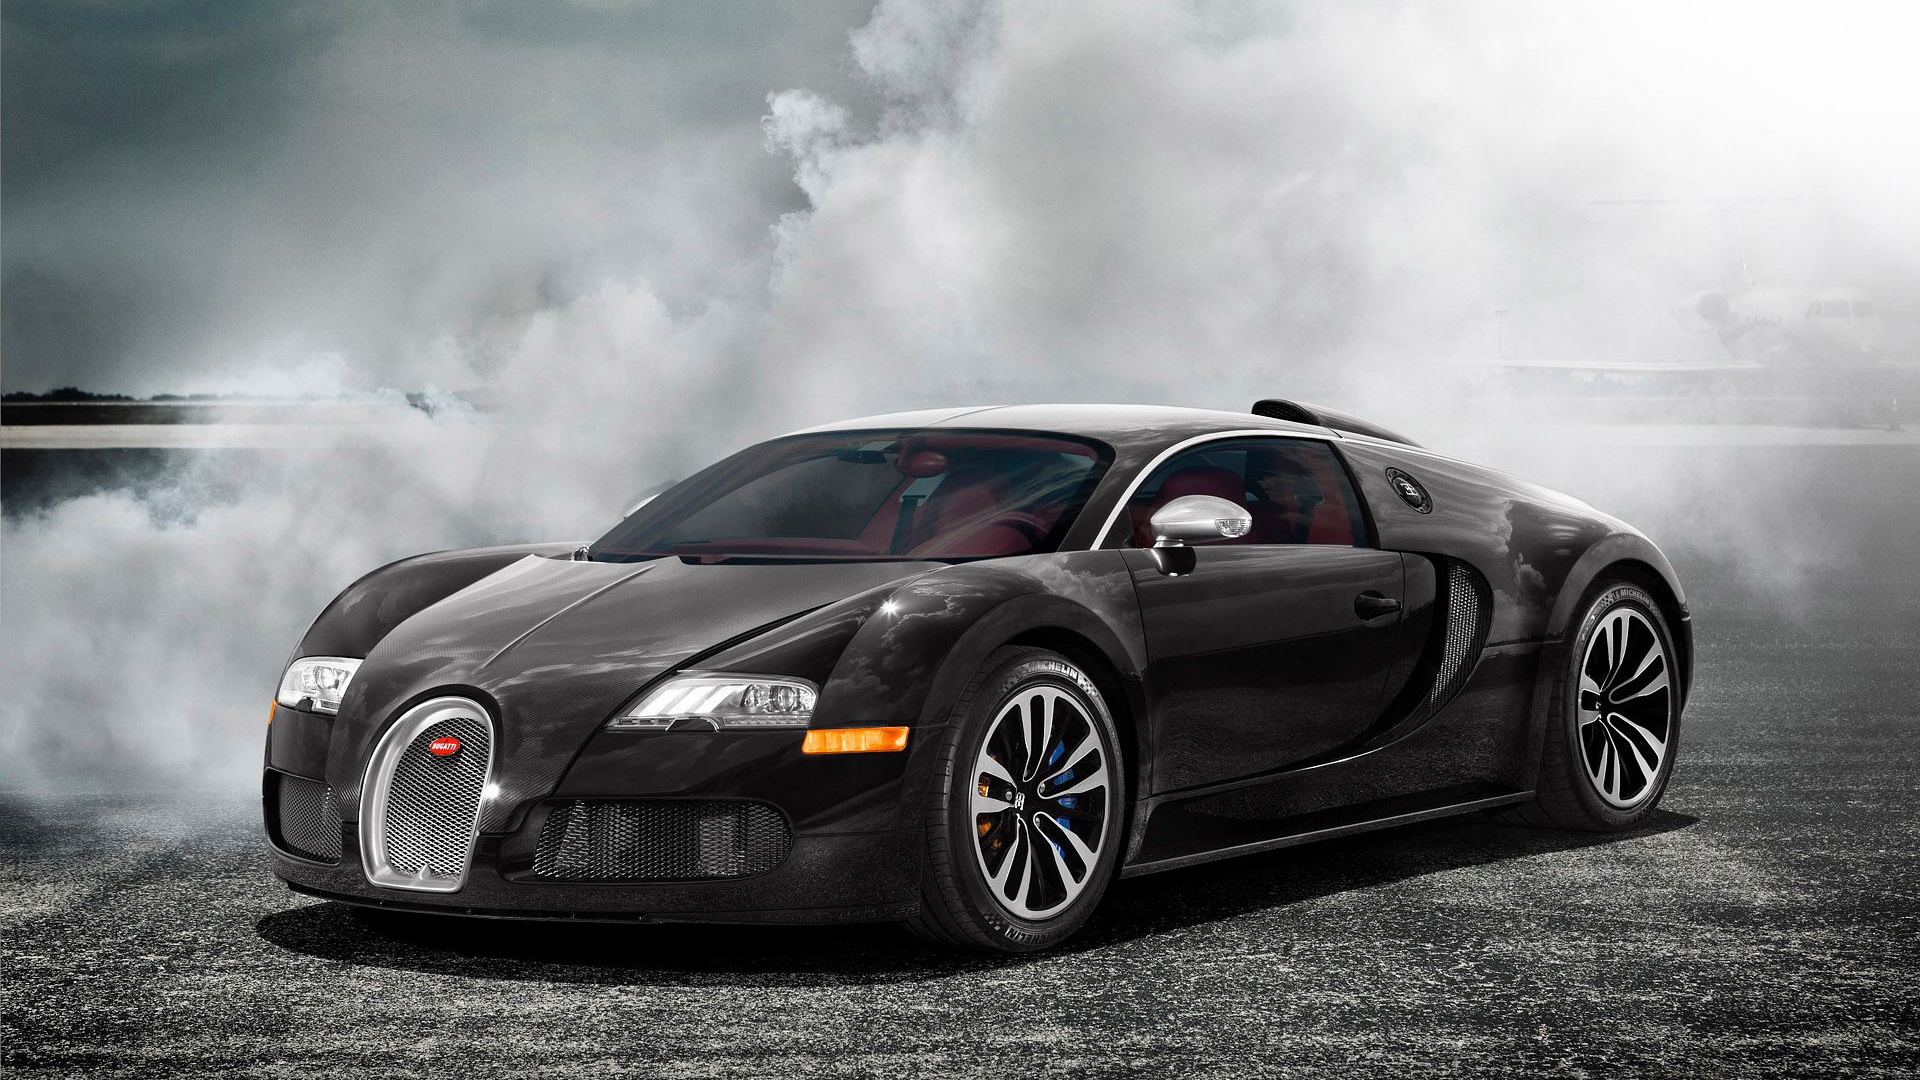 Classic Bugatti supercars wallpapers 19201080 Hot Cars Zone 1920x1080